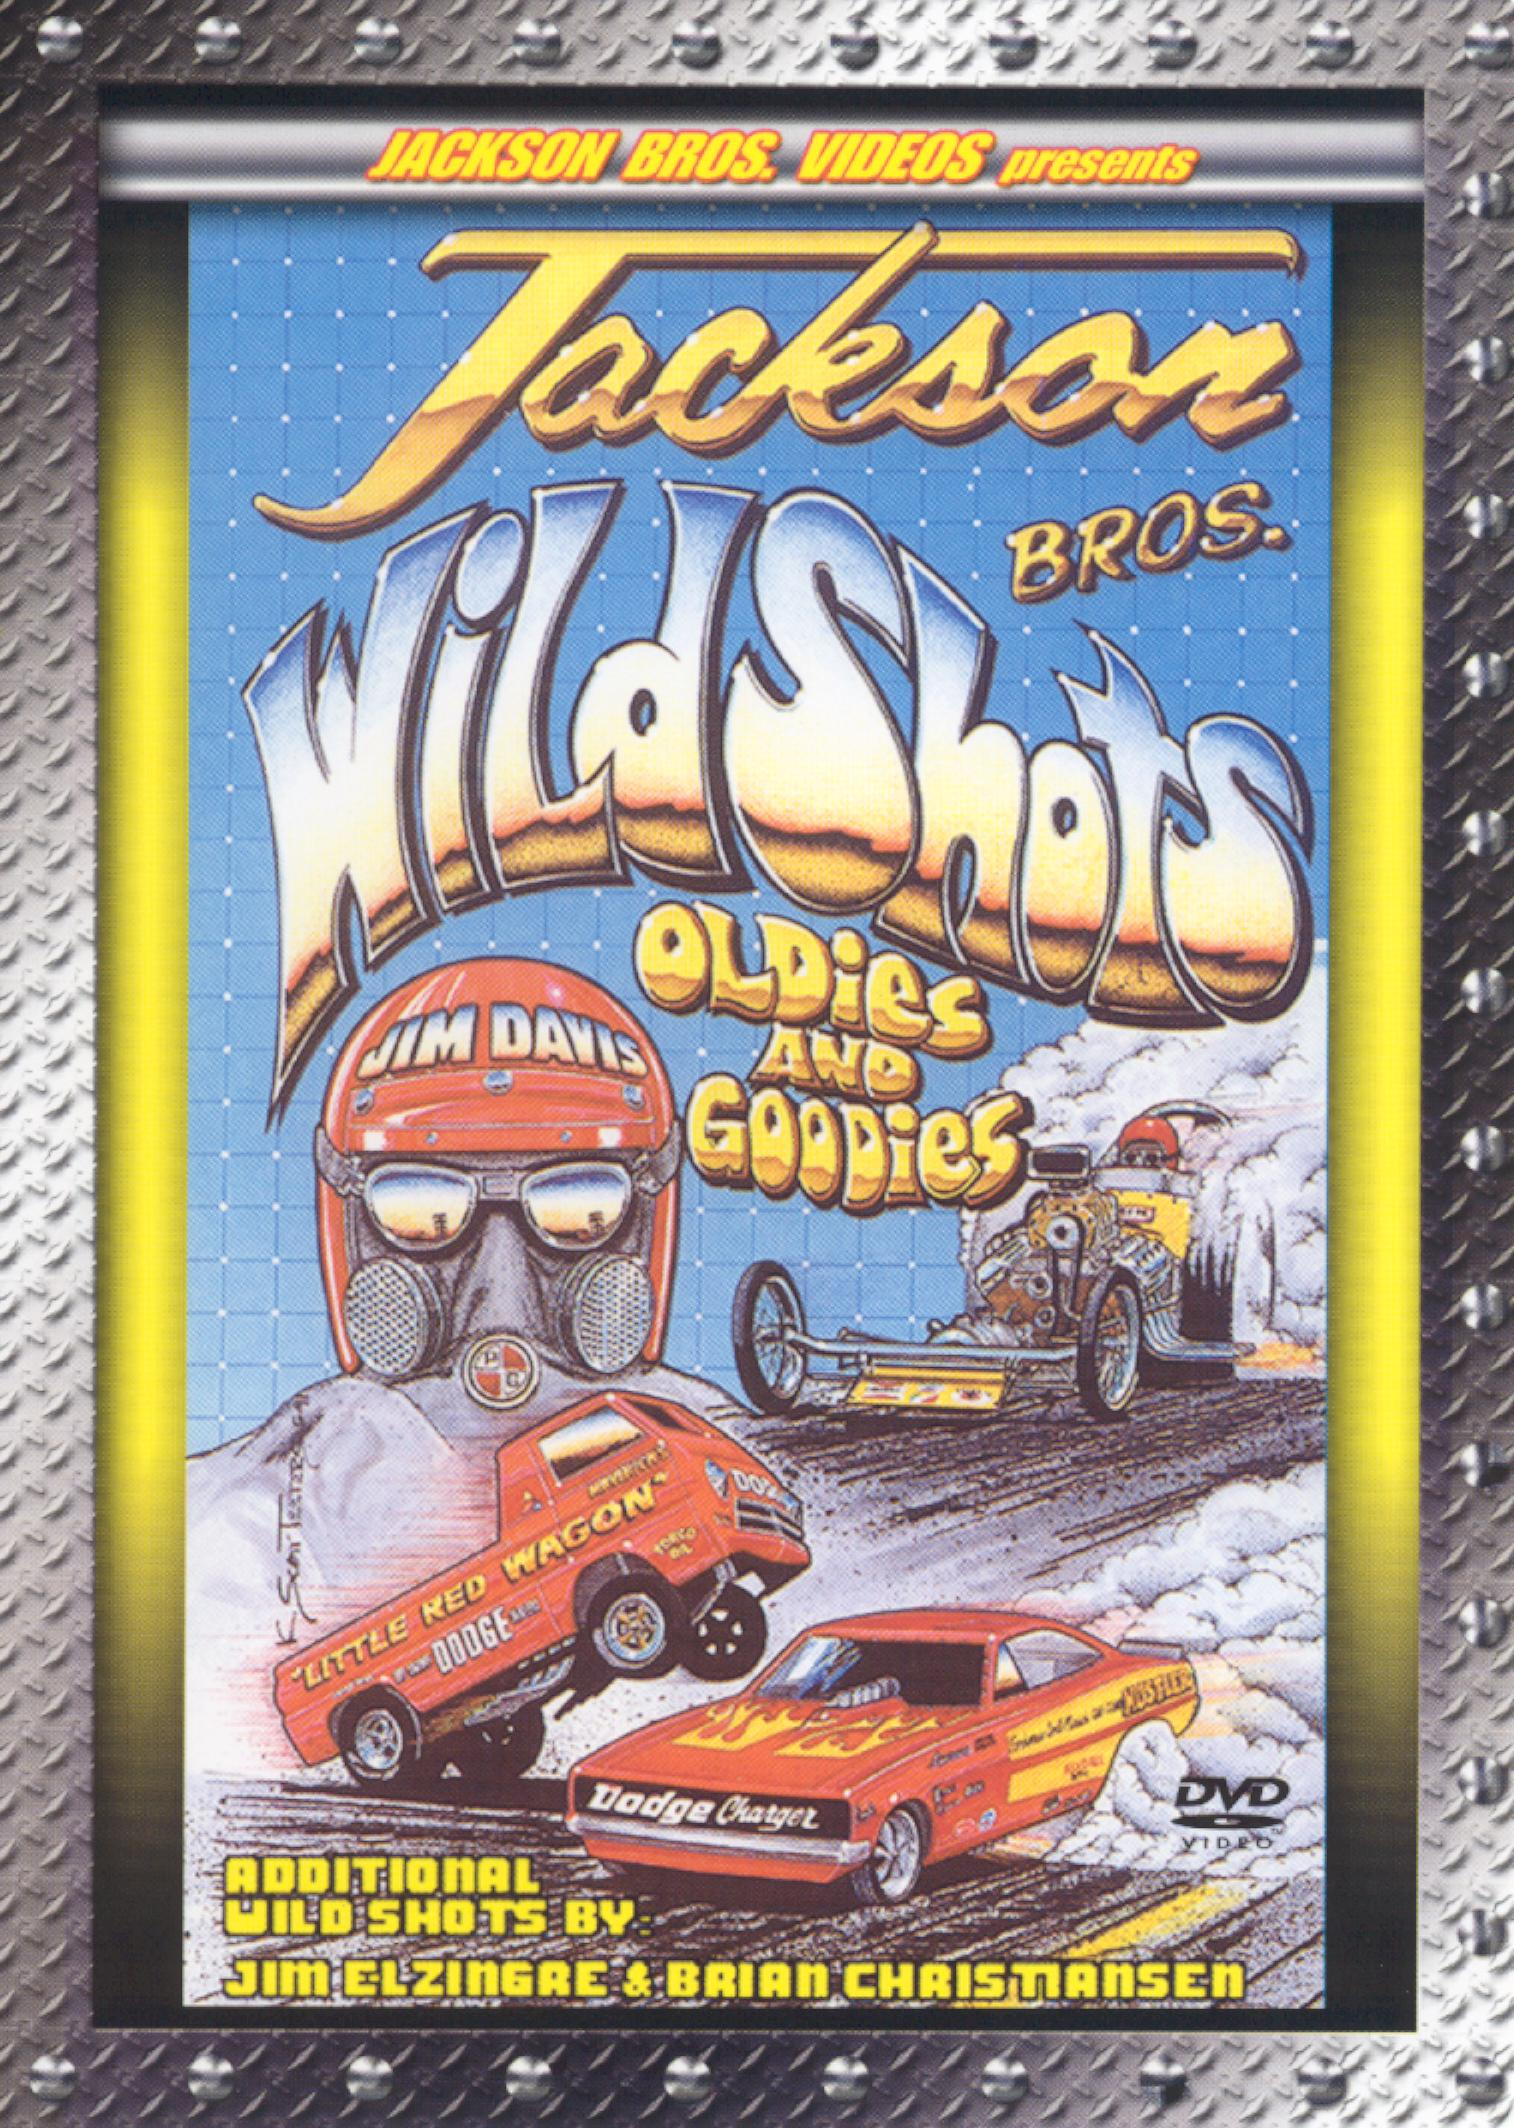 White Knuckle Extreme: Wild Shots - Oldies & Goodies